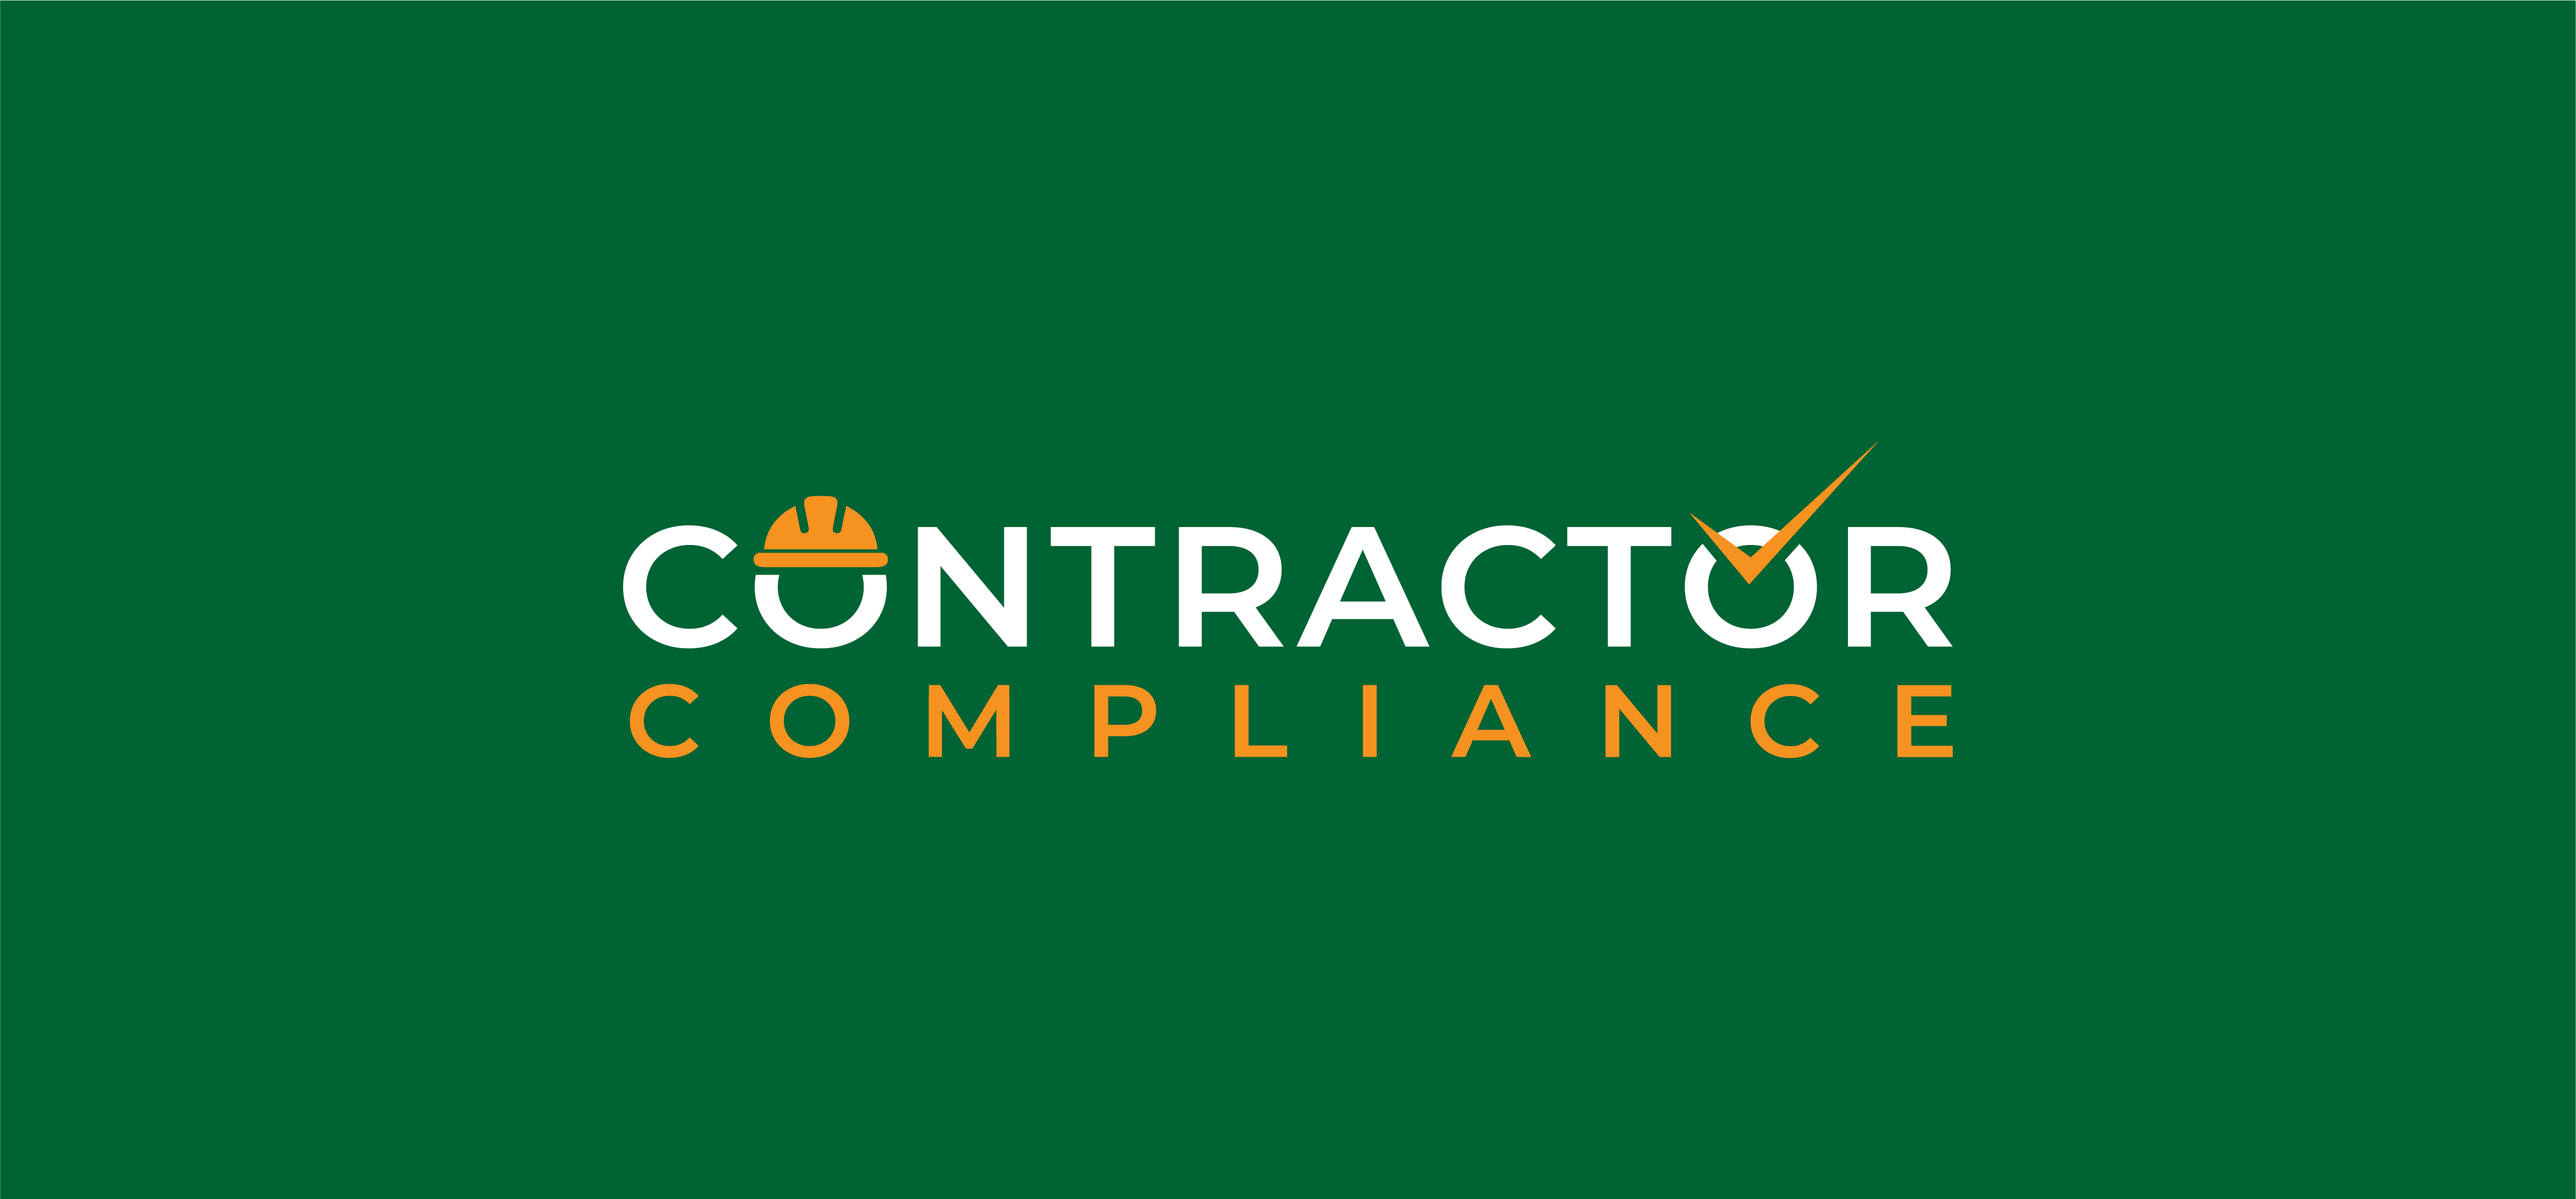 Contractor Compliance Pricing Update